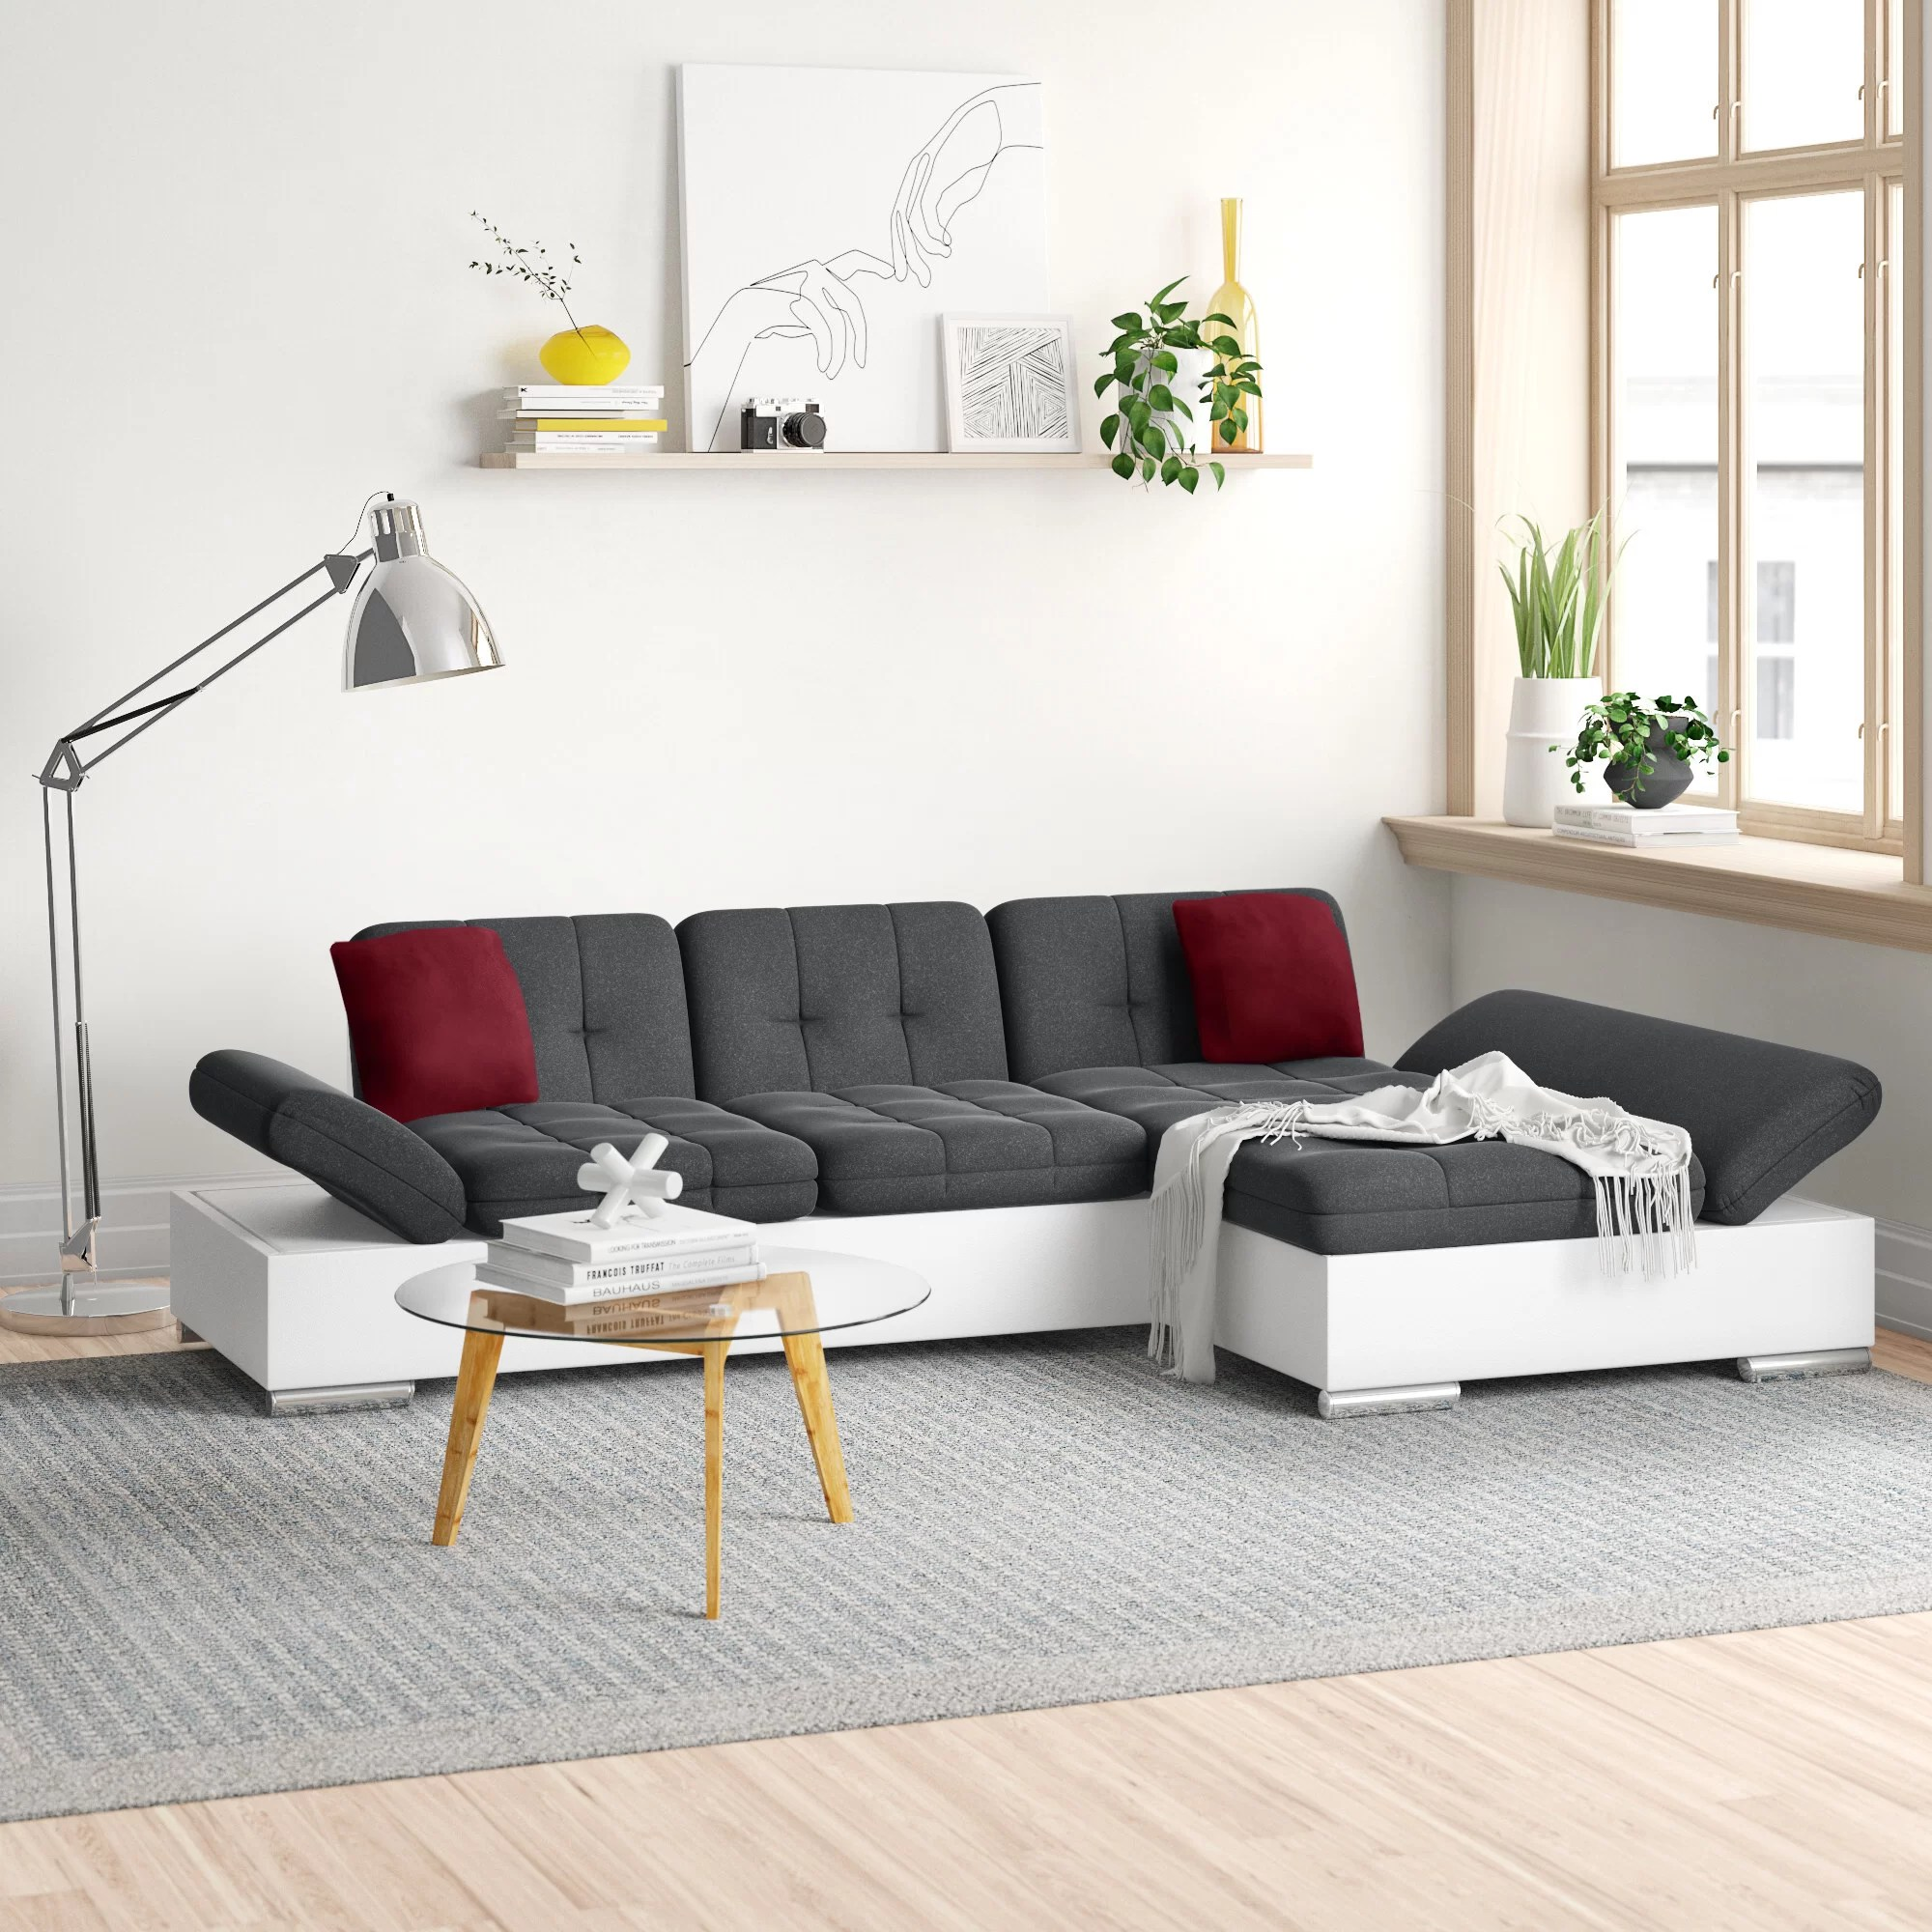 Zipcode Design Ecksofa Pablo Mit Bettfunktion Bewertungen Wayfair De